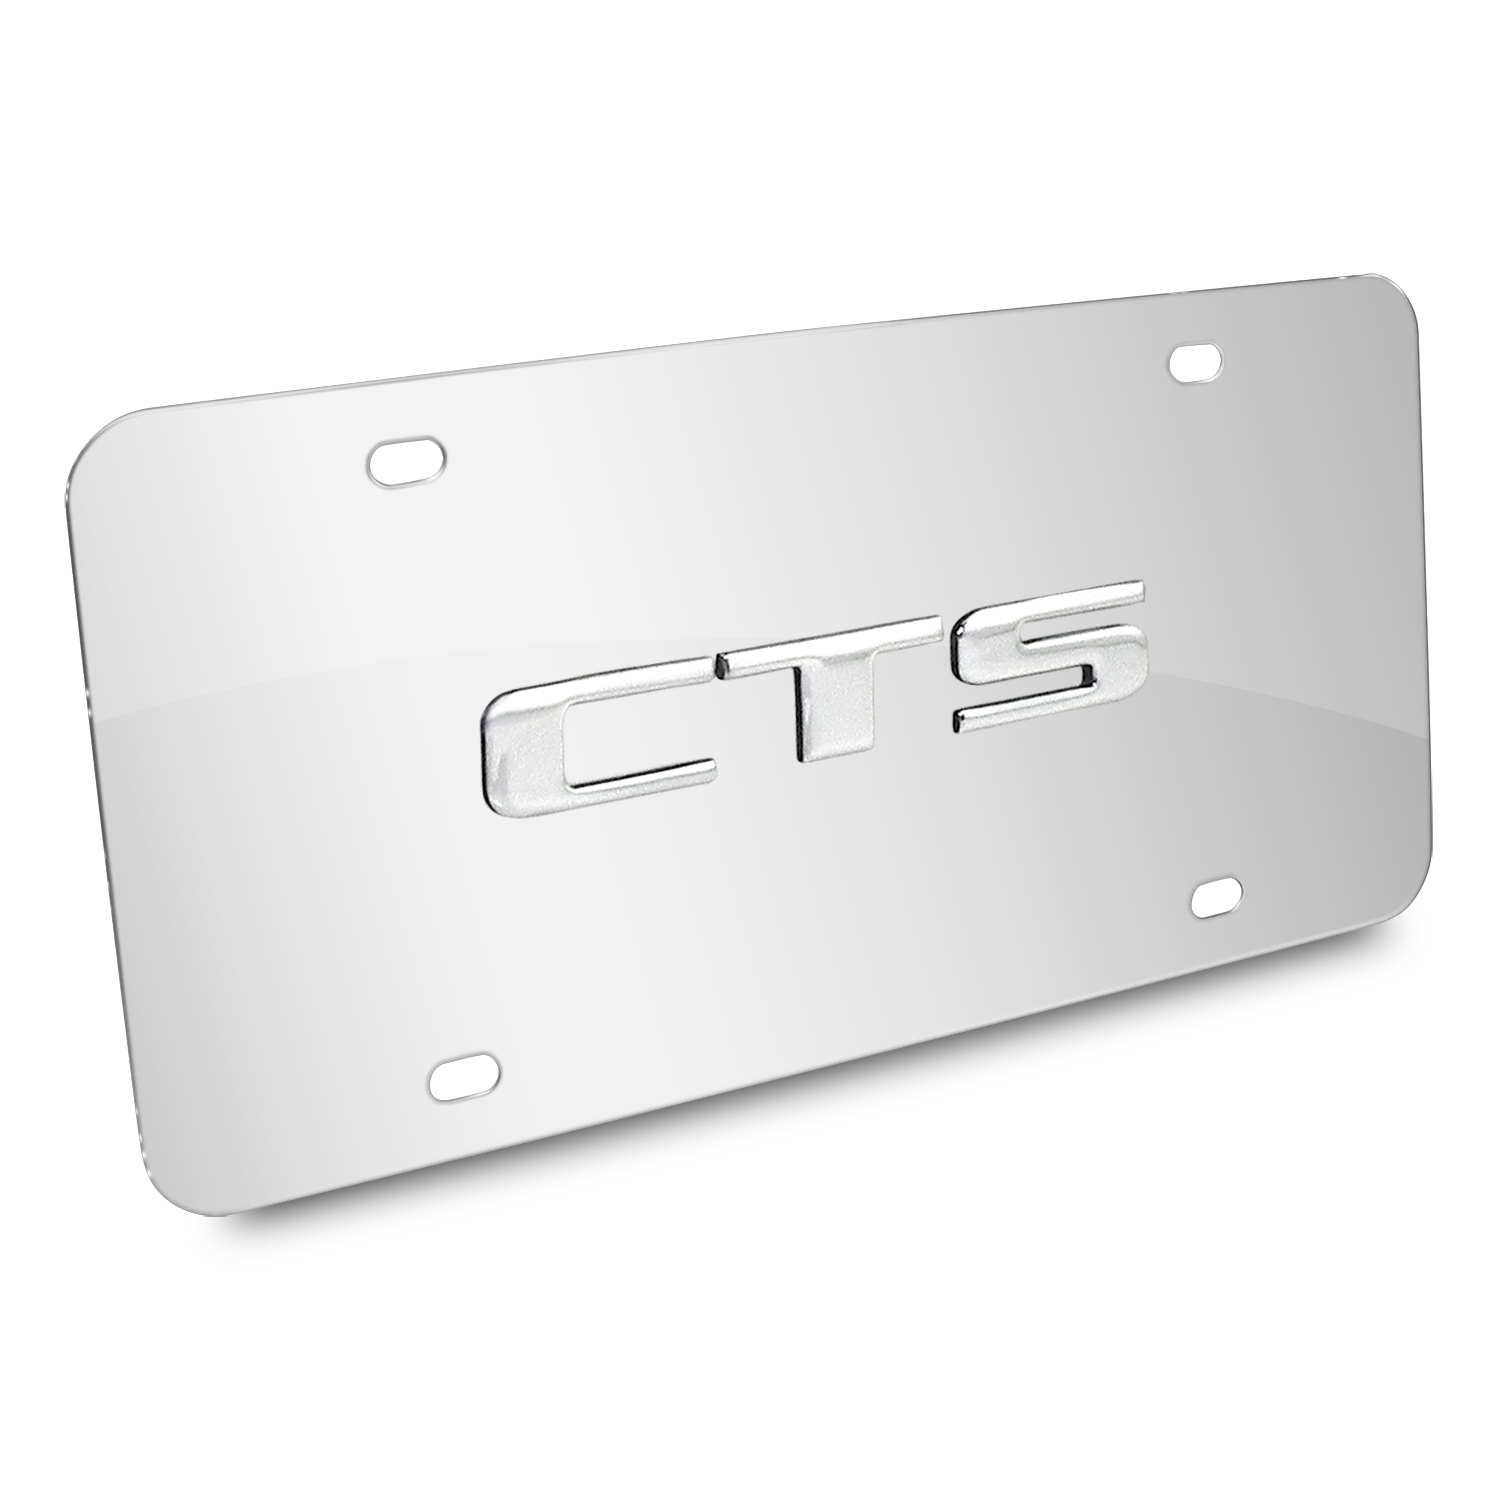 Cadillac CTS Name 3D Logo Chrome Stainless Steel License Plate